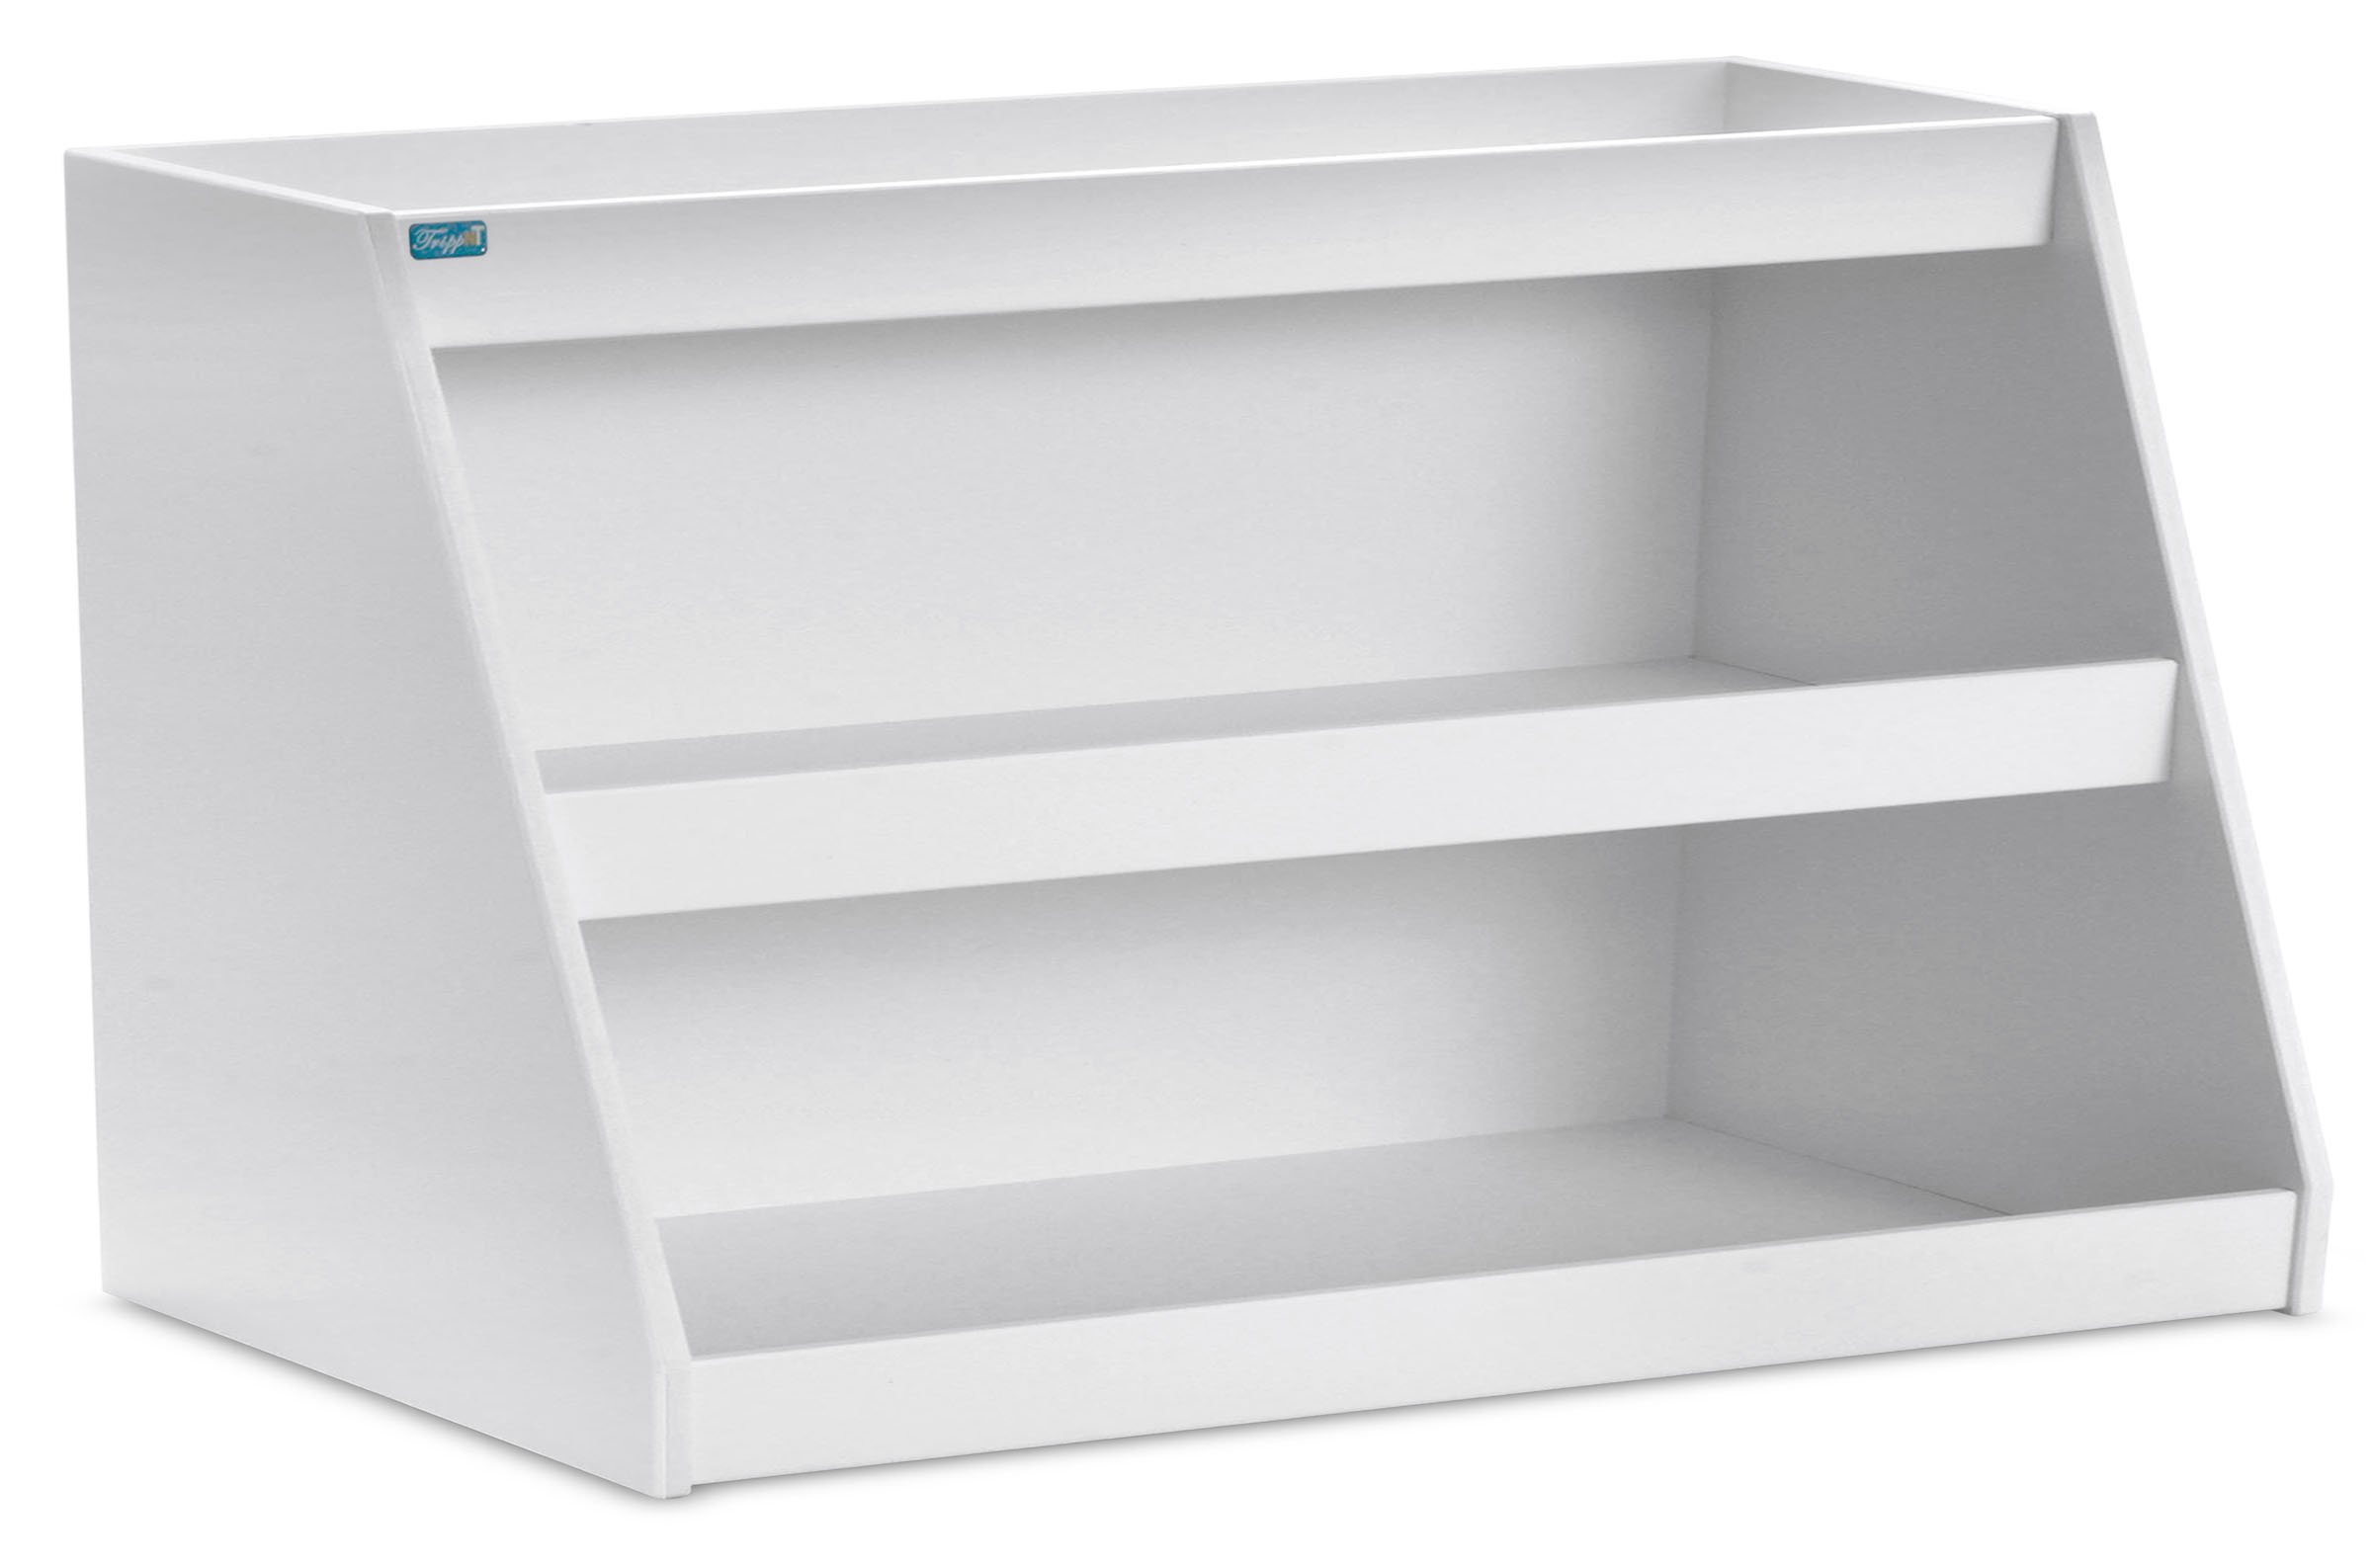 TrippNT 50479 PVC Angled Triple Safety Shelves, 24'' Width x 12'' Height x 9'' Depth, White